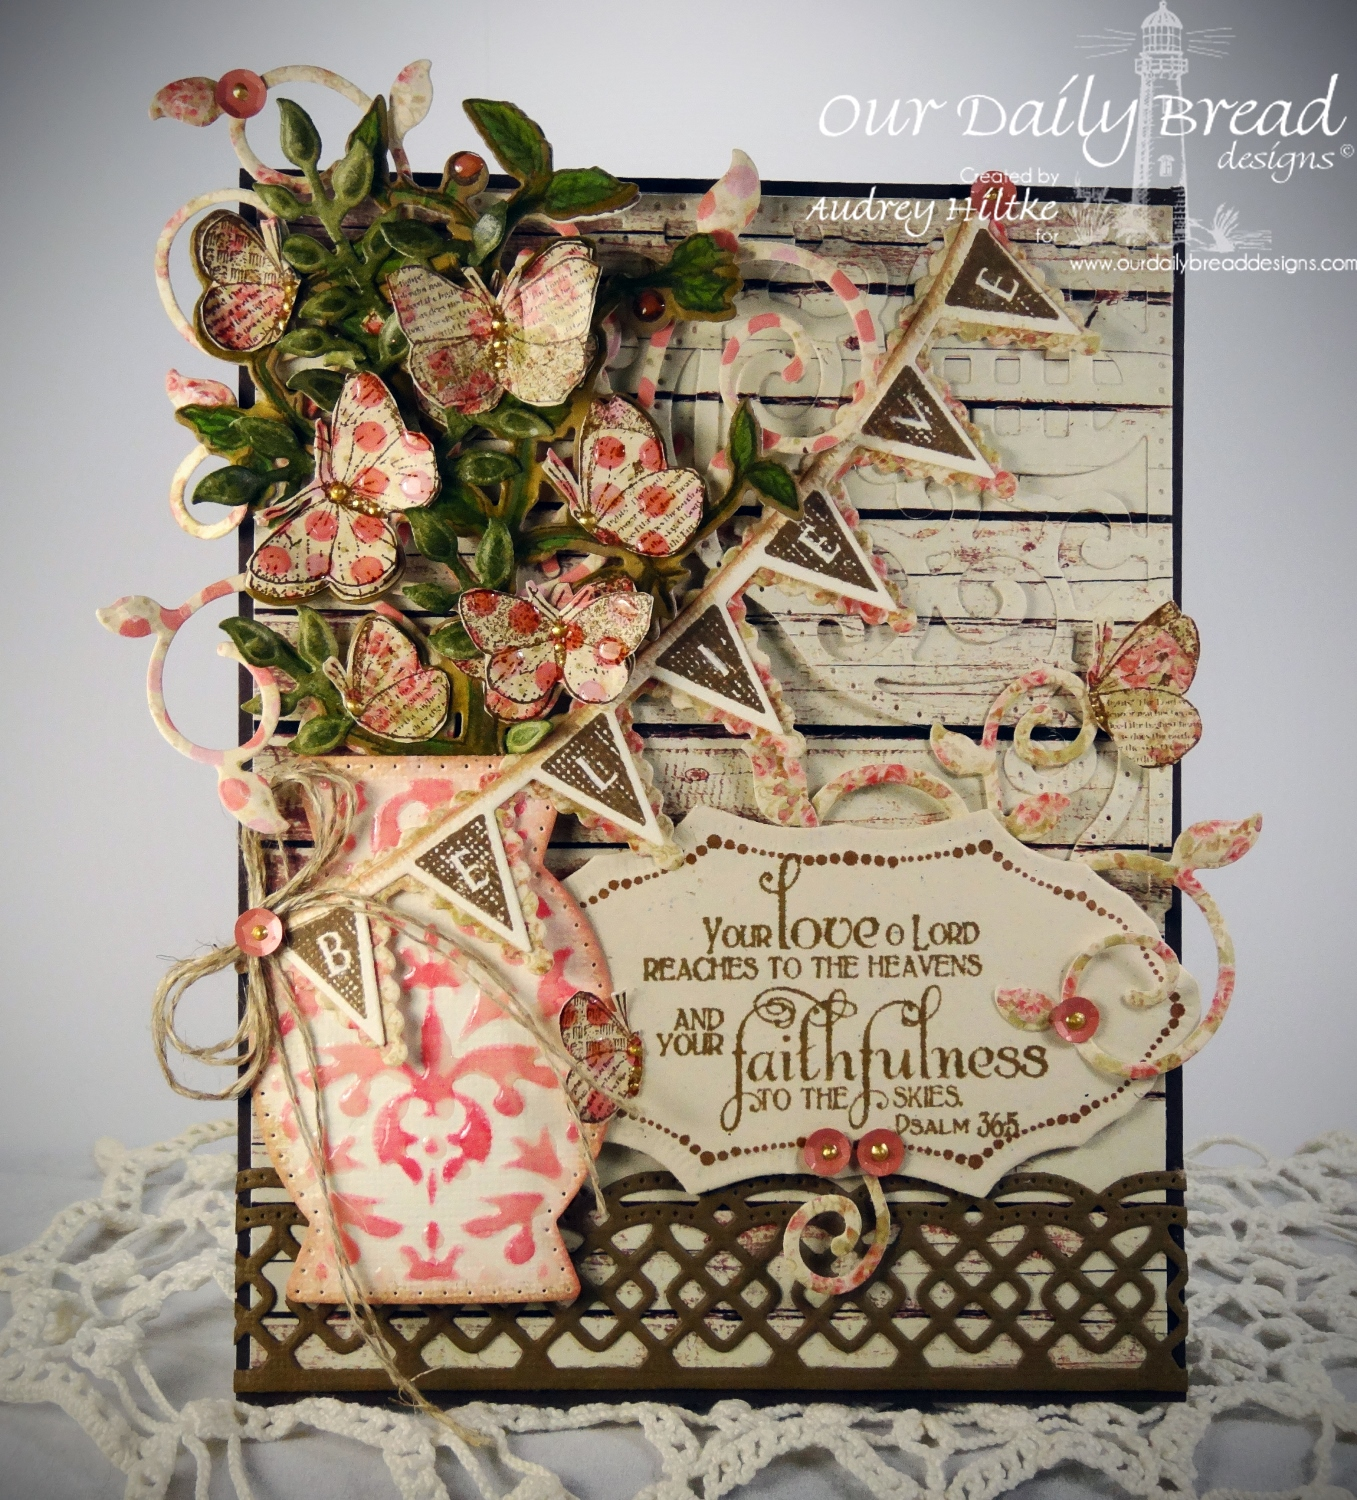 Stamps - Our Daily Bread Designs Faith, Flourish Label Borders, Pennant Row, ODBD Blusing Rose Paper Collection, ODBD Custom Vintage Flourish Pattern Die, ODBD Custom Beautiful Borders Dies, ODBD Custom Fancy Foliage Die, ODBD Custom Decorative Vase Die, ODBD Custom Pennant Row Die